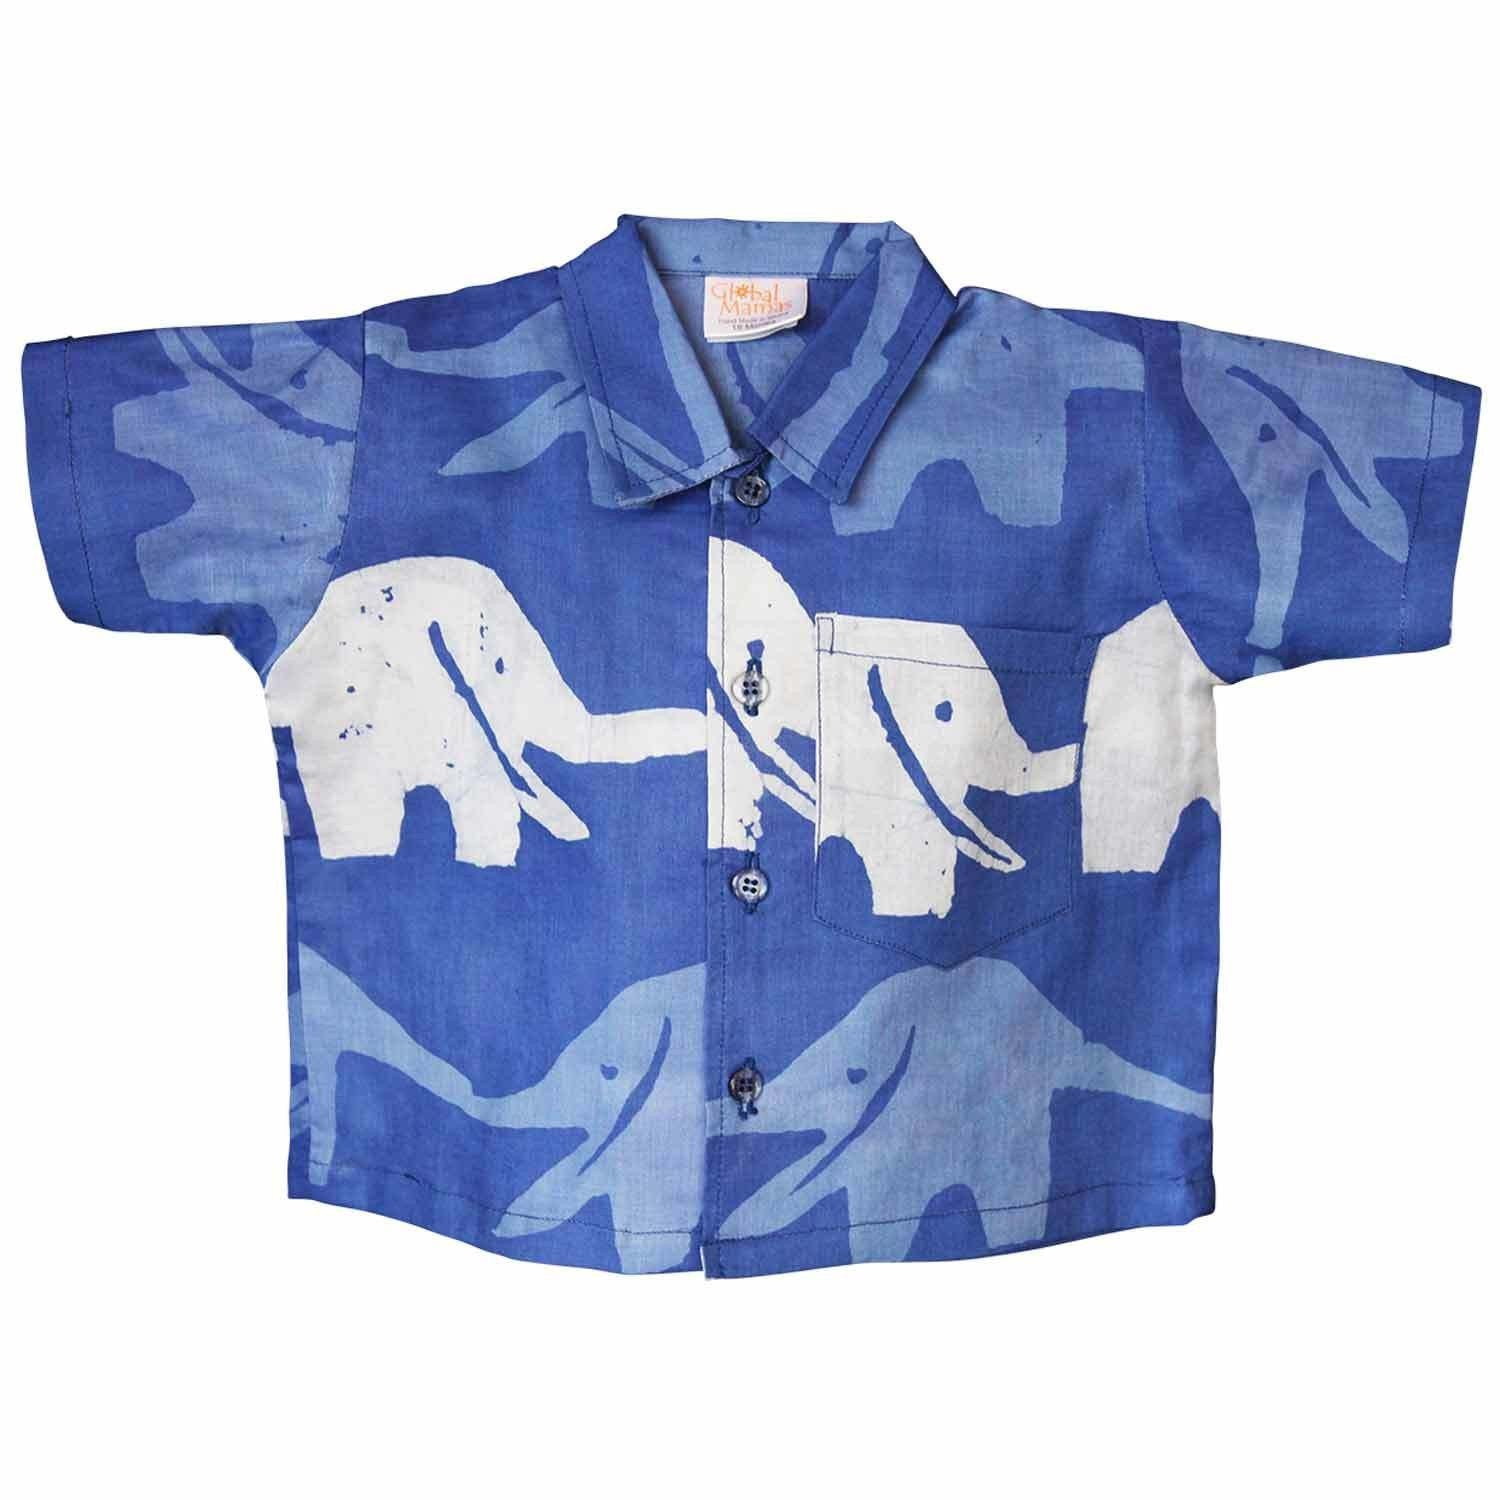 Baby Button Down Shirt - Blueberry Elephants - Global Mamas (Fair Trade)